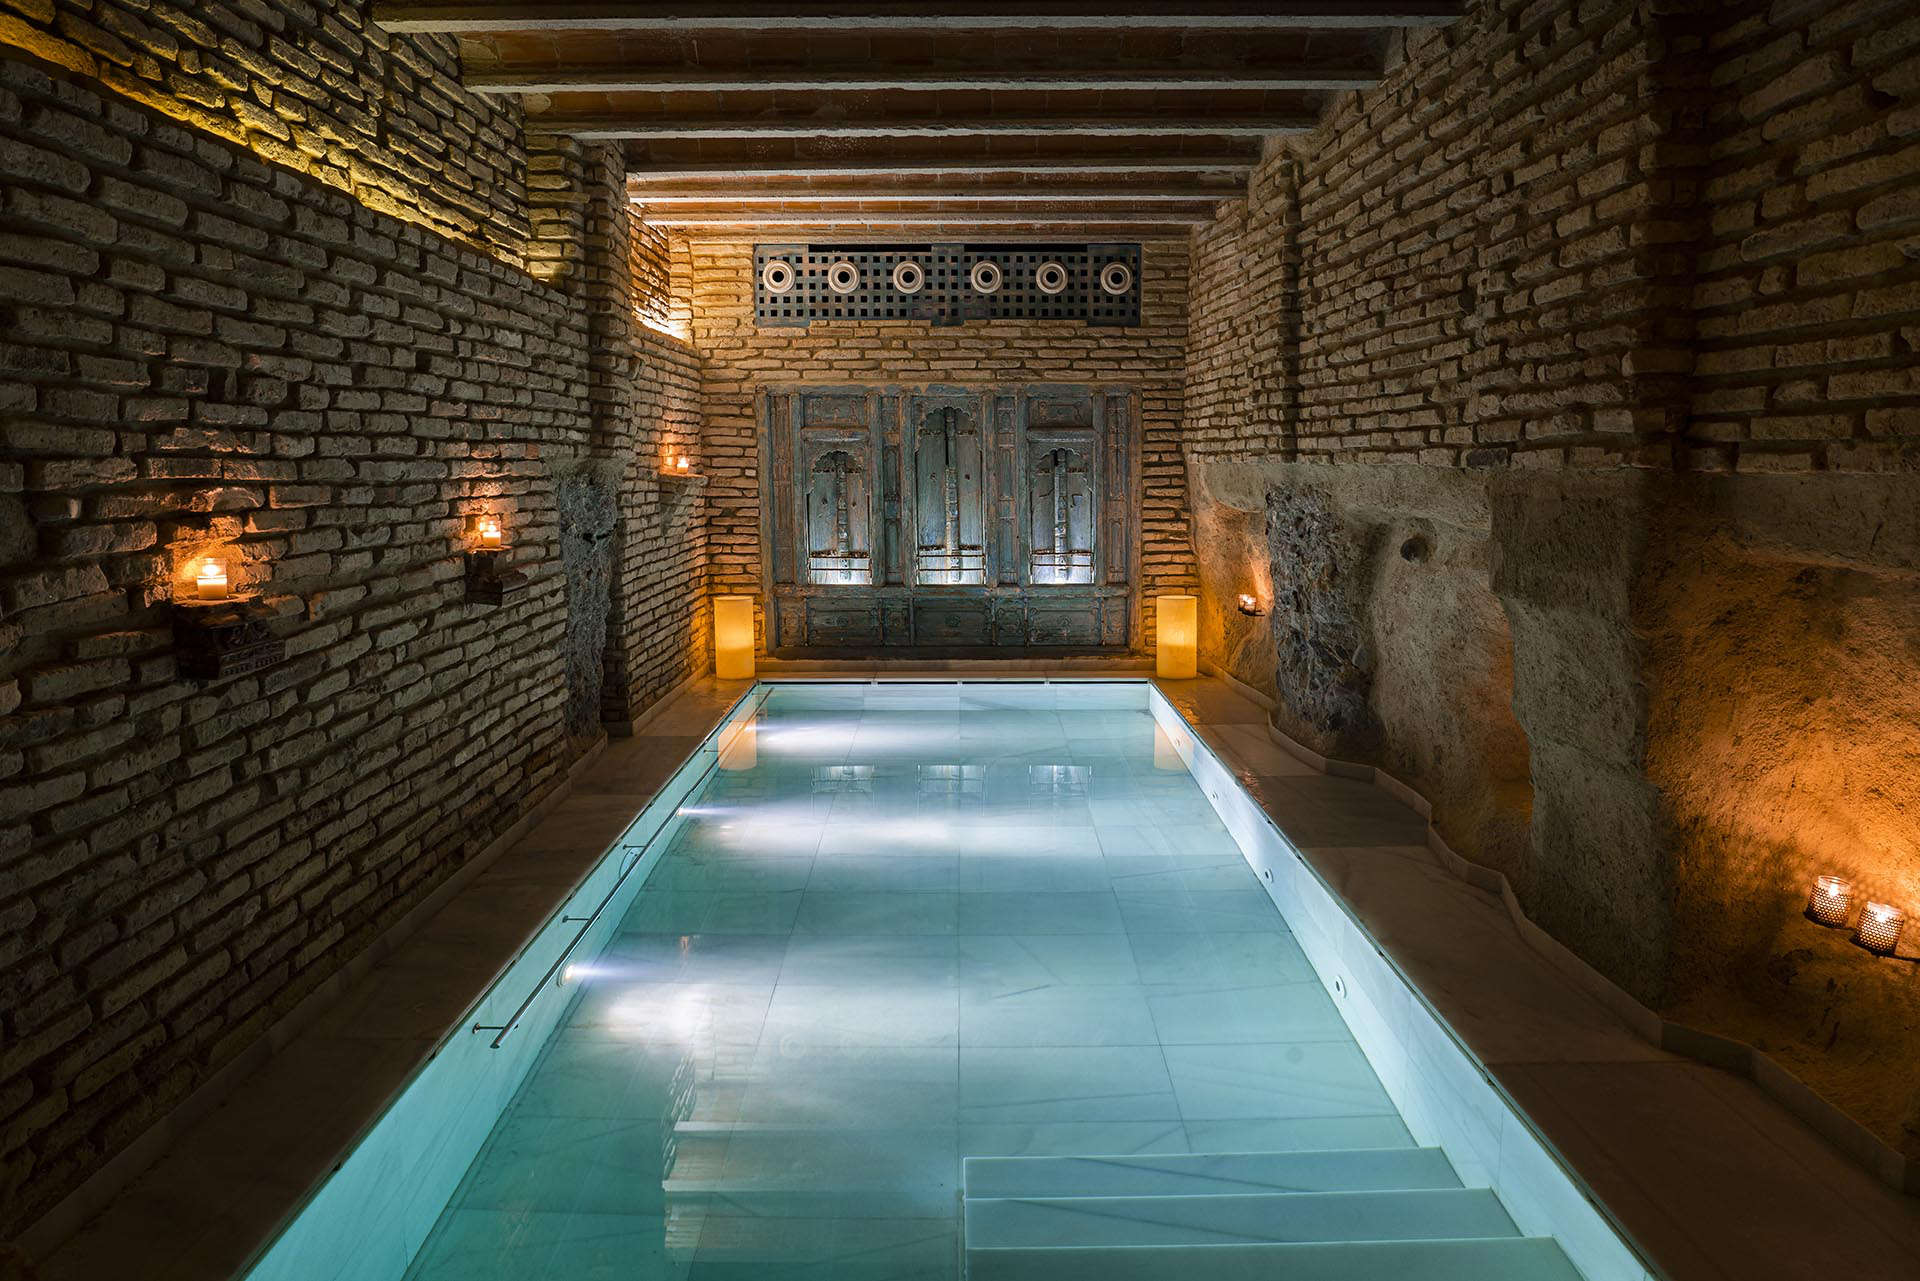 One of the baths at the underground spa in Almeria